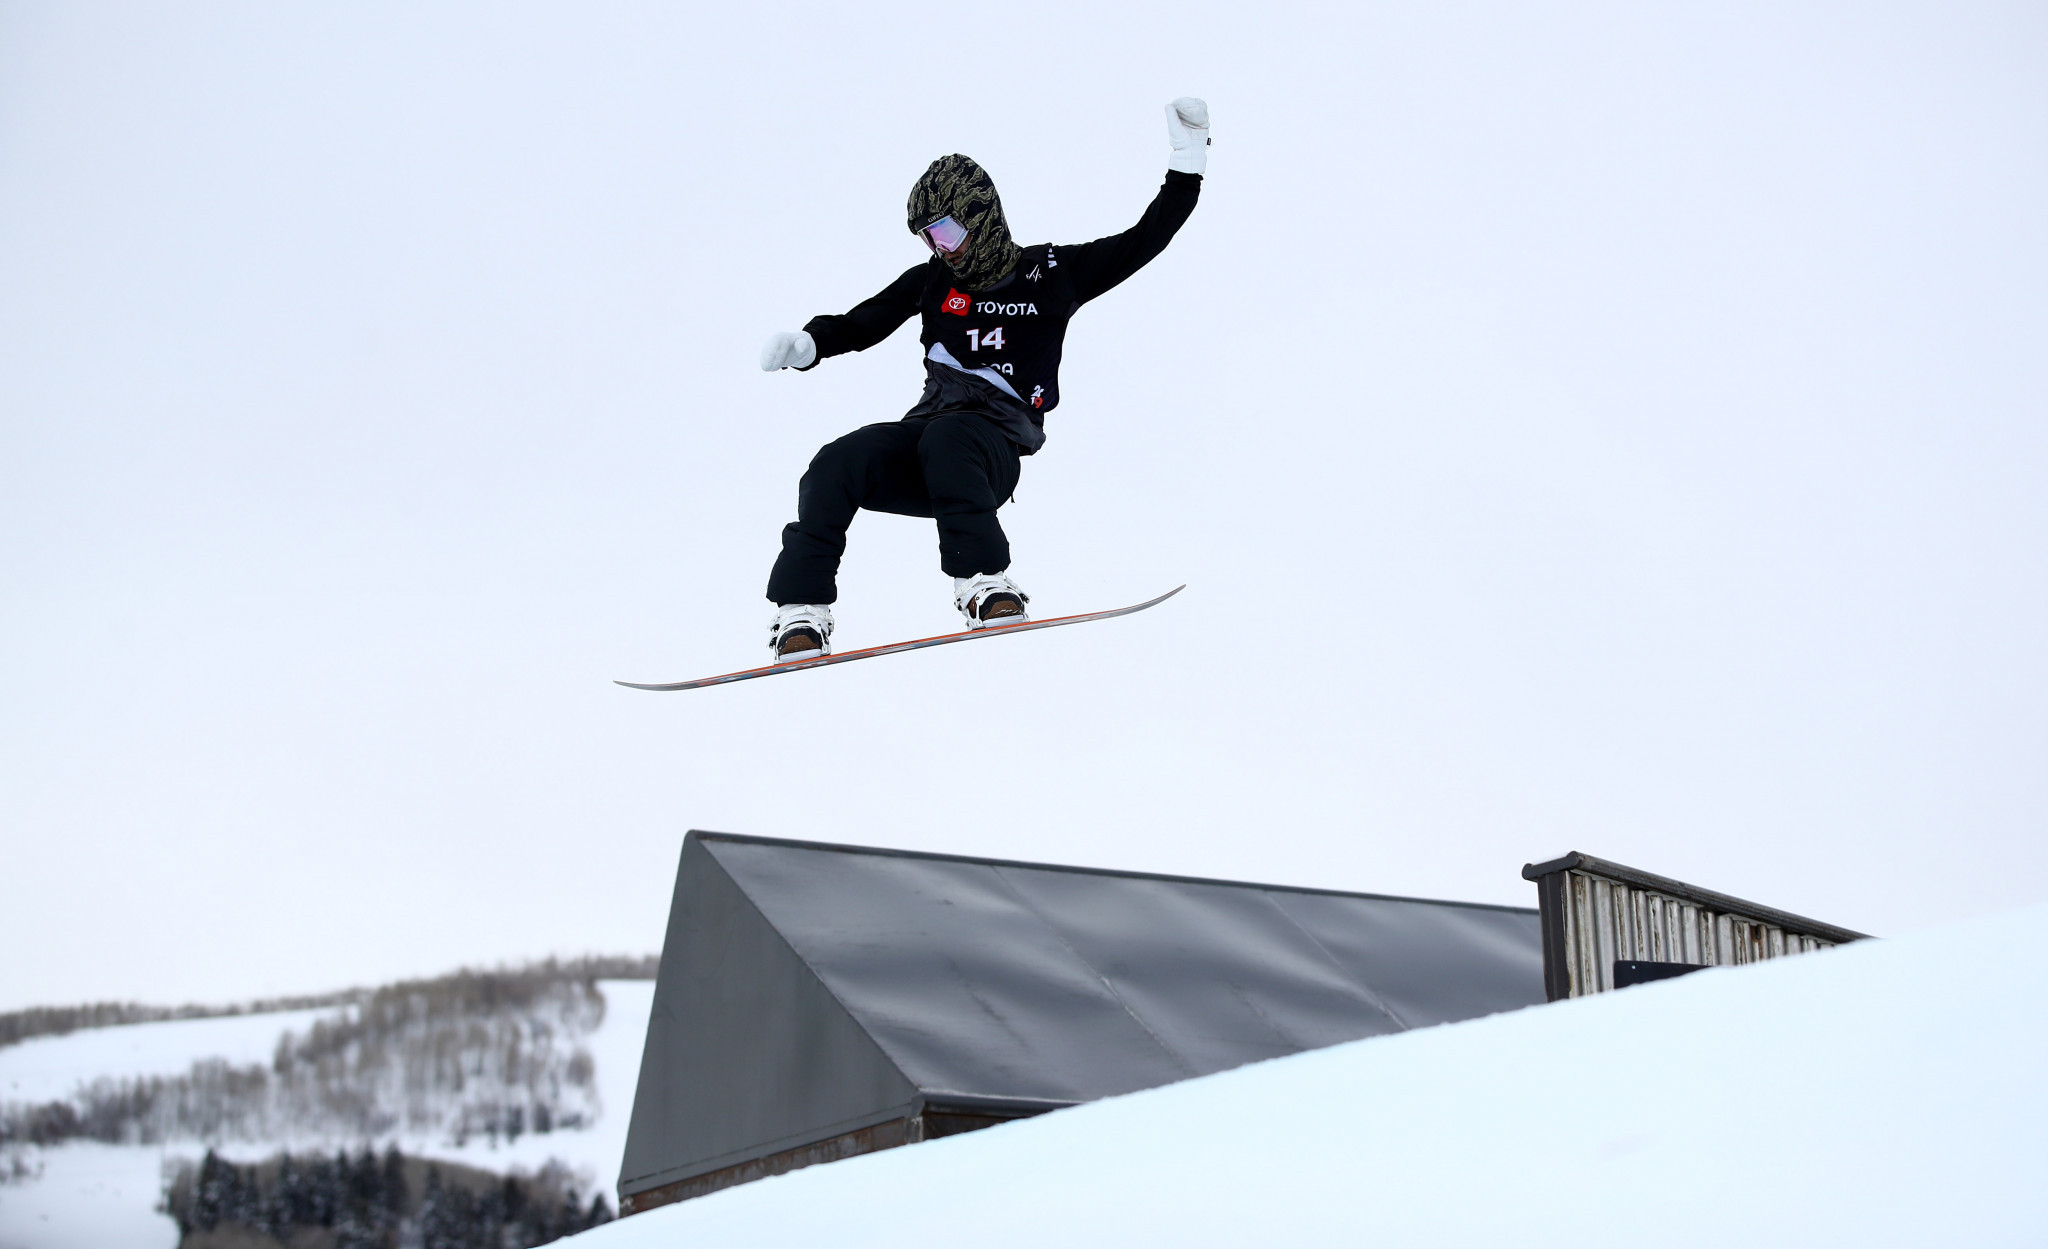 Niklas Mattsson had a day to remember as he won his first slopestyle World Cup in Laax ©Getty Images